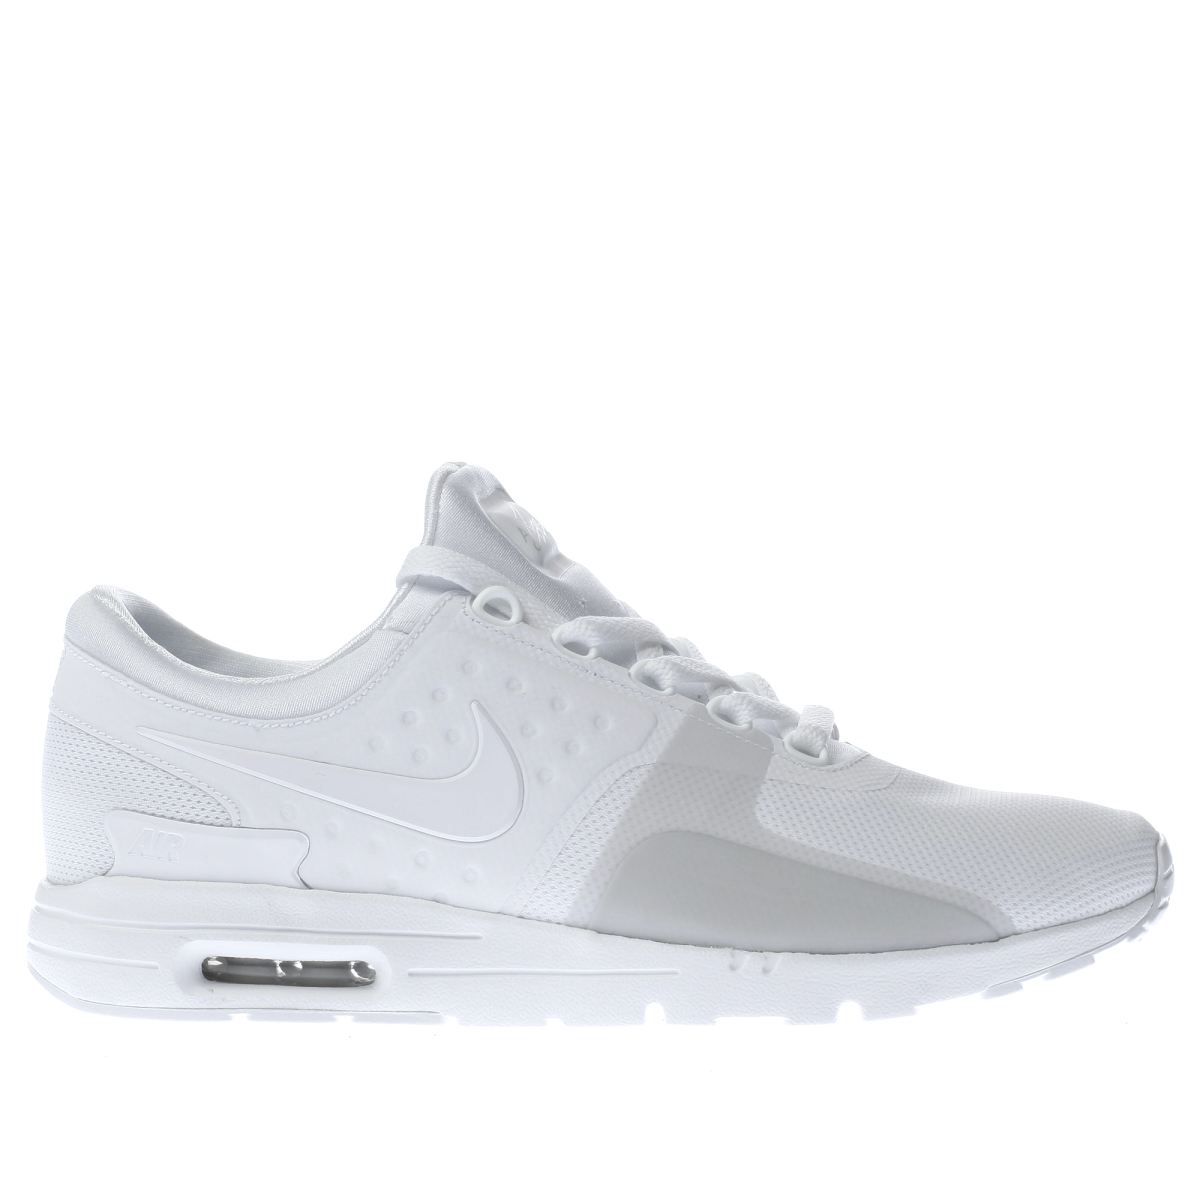 nike white & grey air max zero trainers